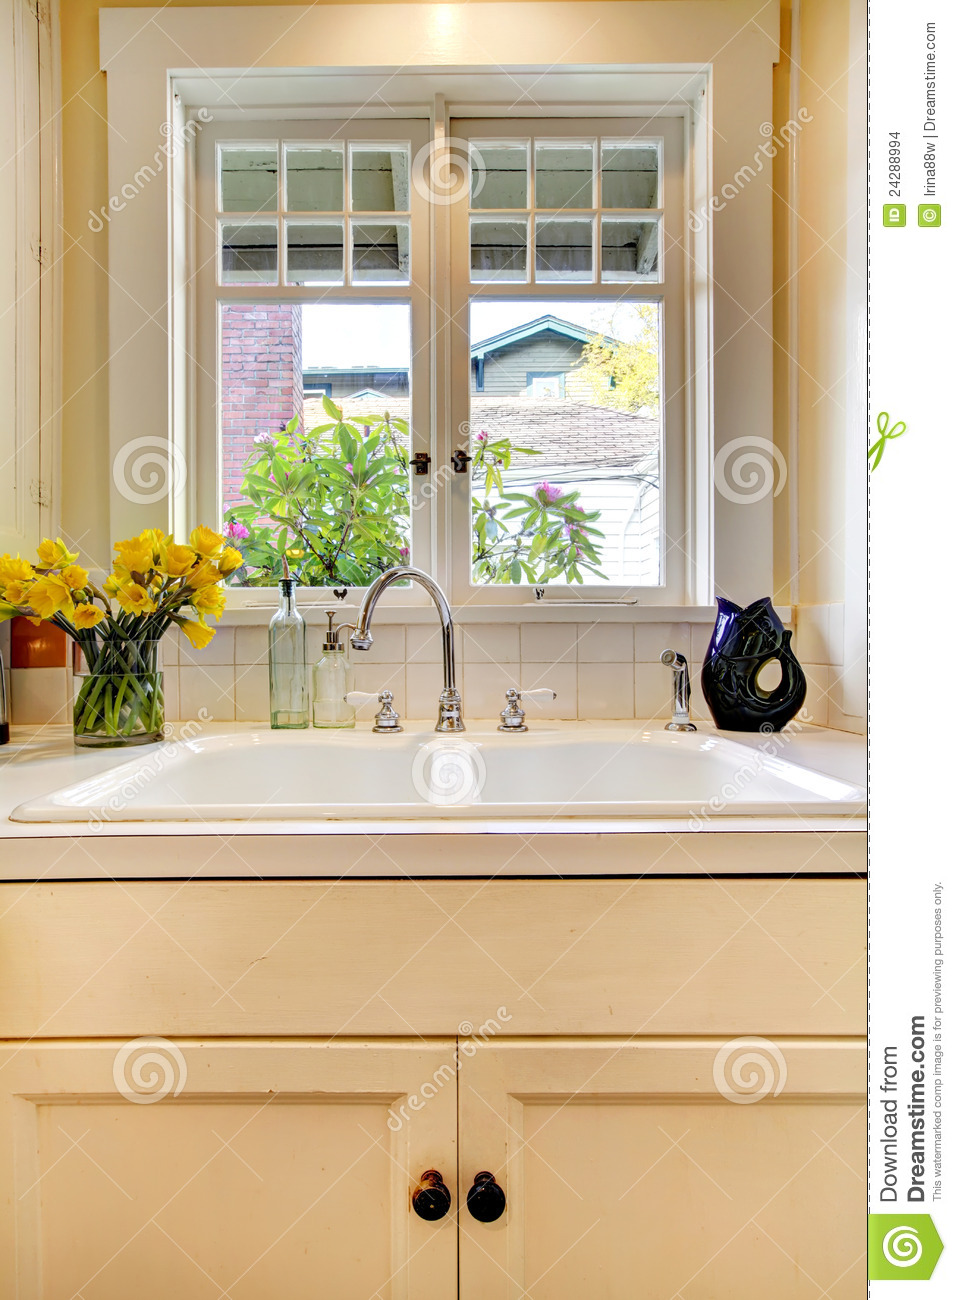 Kitchen sink and white cabinet with window stock images for Kitchen door with window